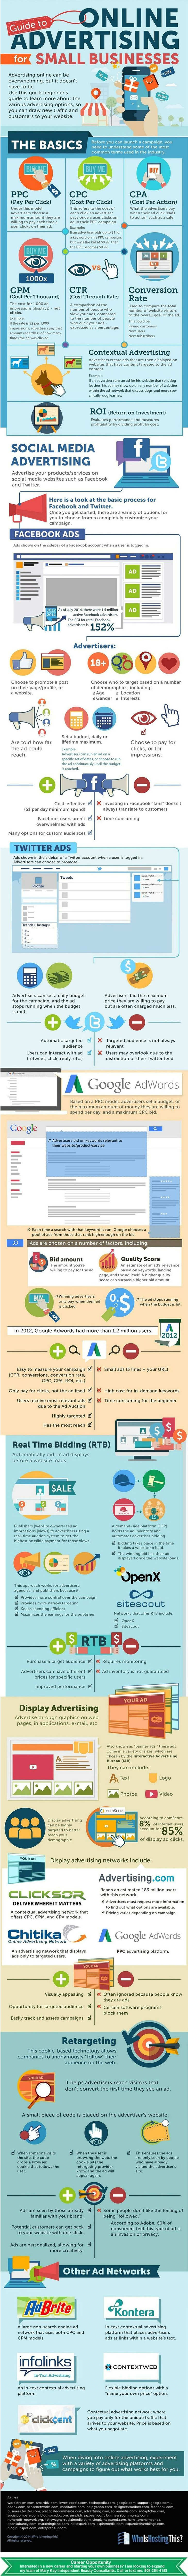 "This ""Guide to Online Advertising for Small Businesses"" infographic by WhoIsHostingThis? leads you through the basic terminology and advertising channels, including social media advertising, search advertising, display advertising, programmatic advertising/RTB and retargeting. It can be used as a first step in the development of a online SMB advertising program. More detail here: https://www.linkedin.com/pulse/guide-online-advertising-small-businesses-louise-rijk #digitaladvertising"